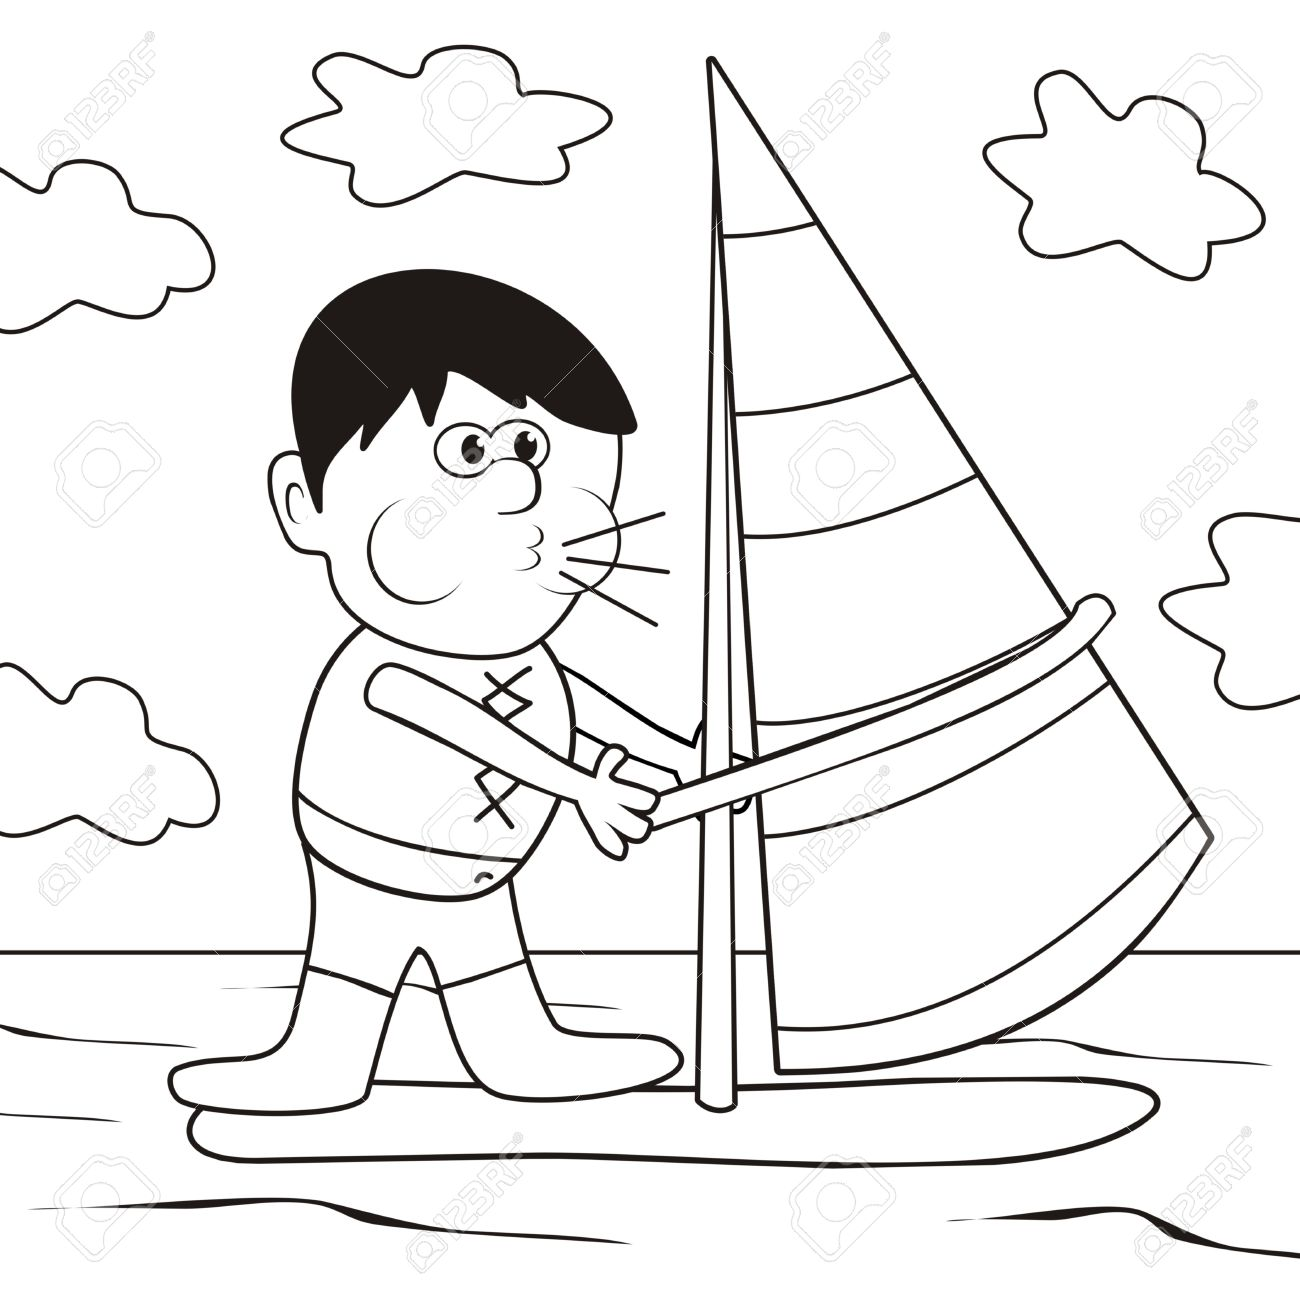 Windsurfing Coloring Book Royalty Free Cliparts Vectors And Stock